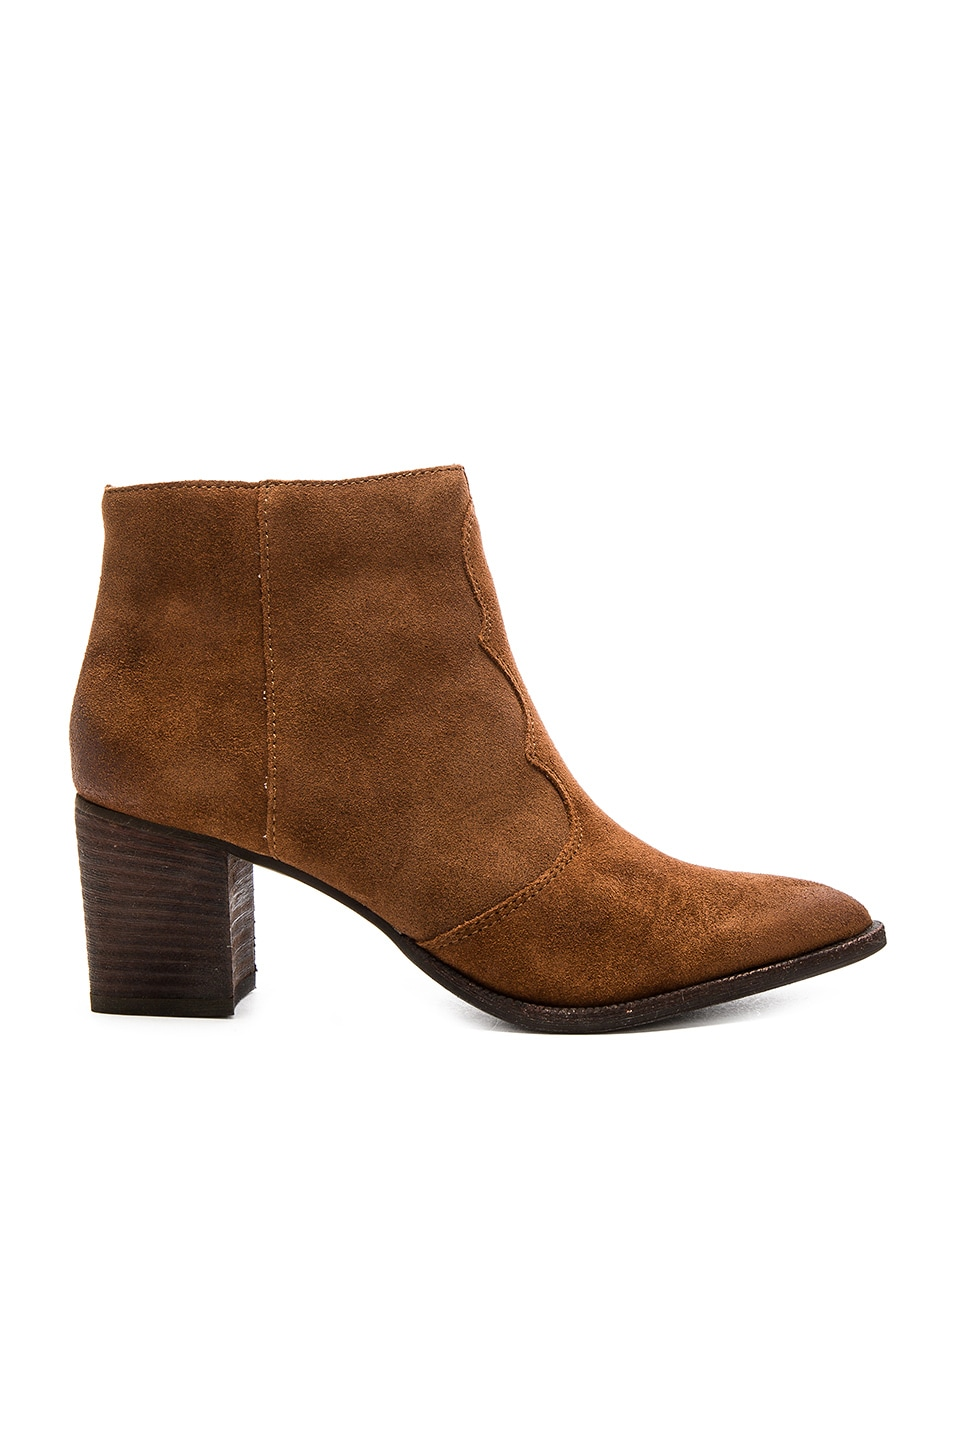 Lennon Bootie by Dolce Vita